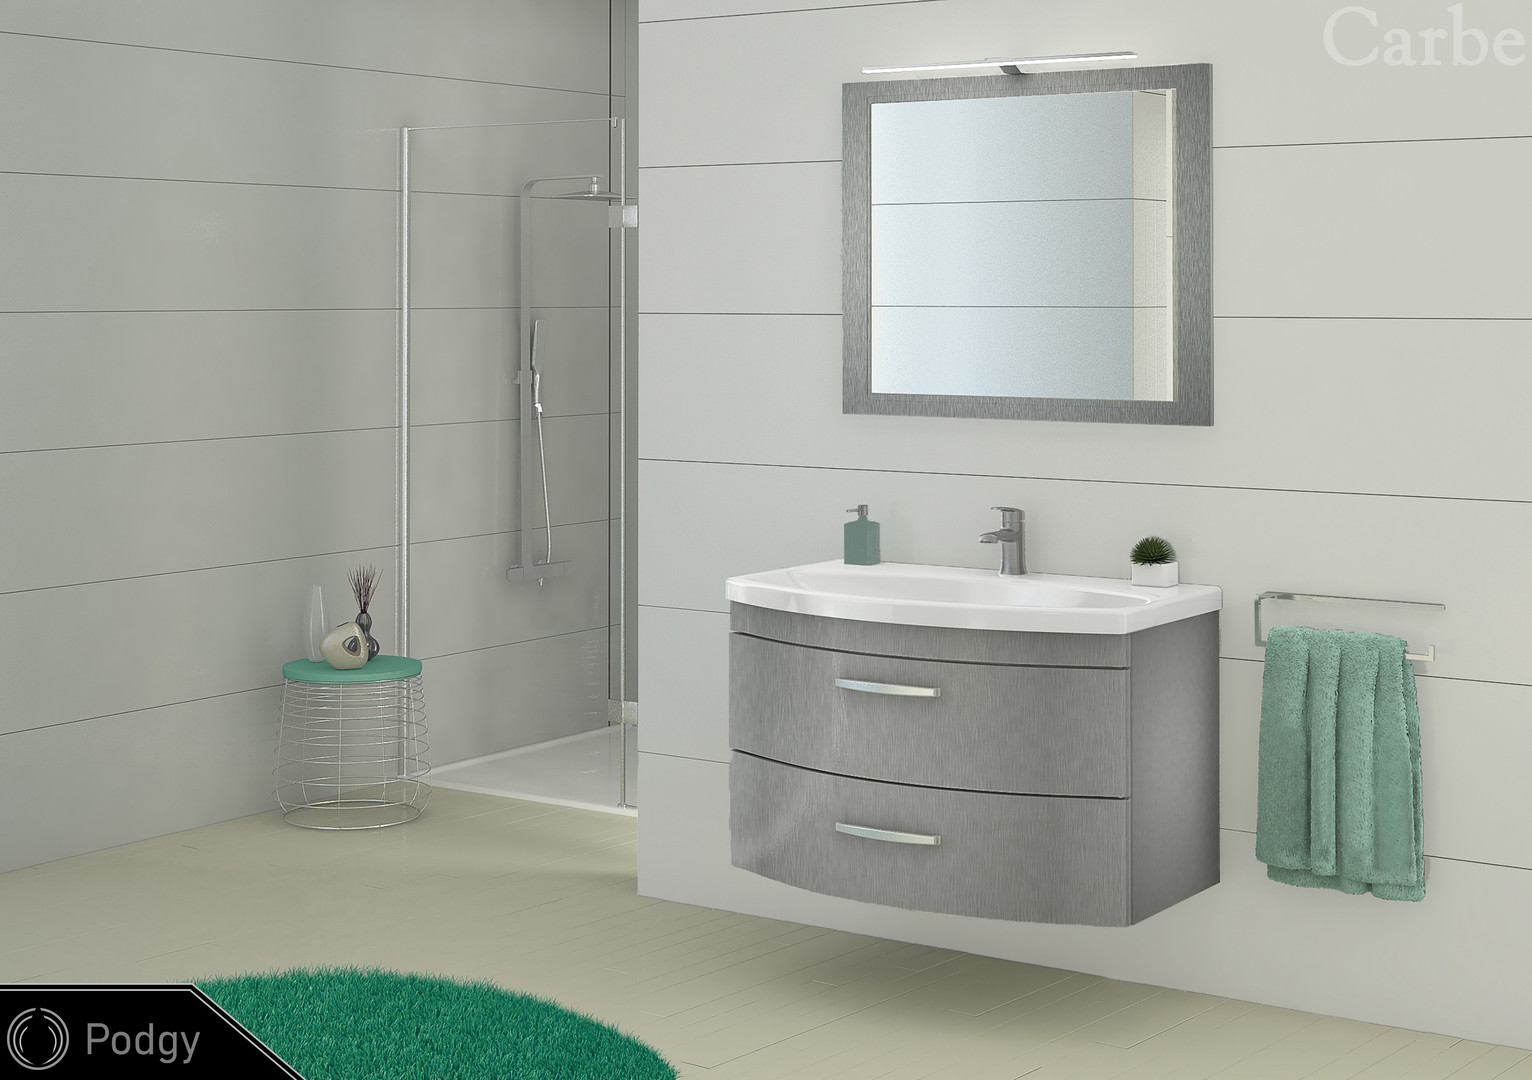 Podgy - Aluminium Structure, Dolmite Washbasin, Soft Closing